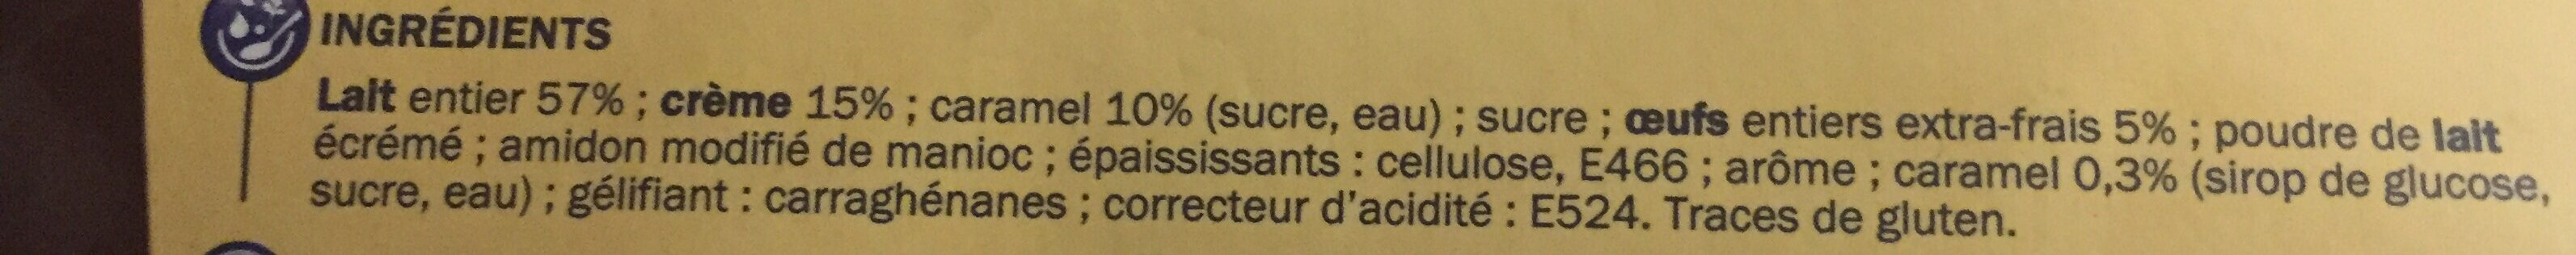 Petit pot de crème caramel - Ingredients